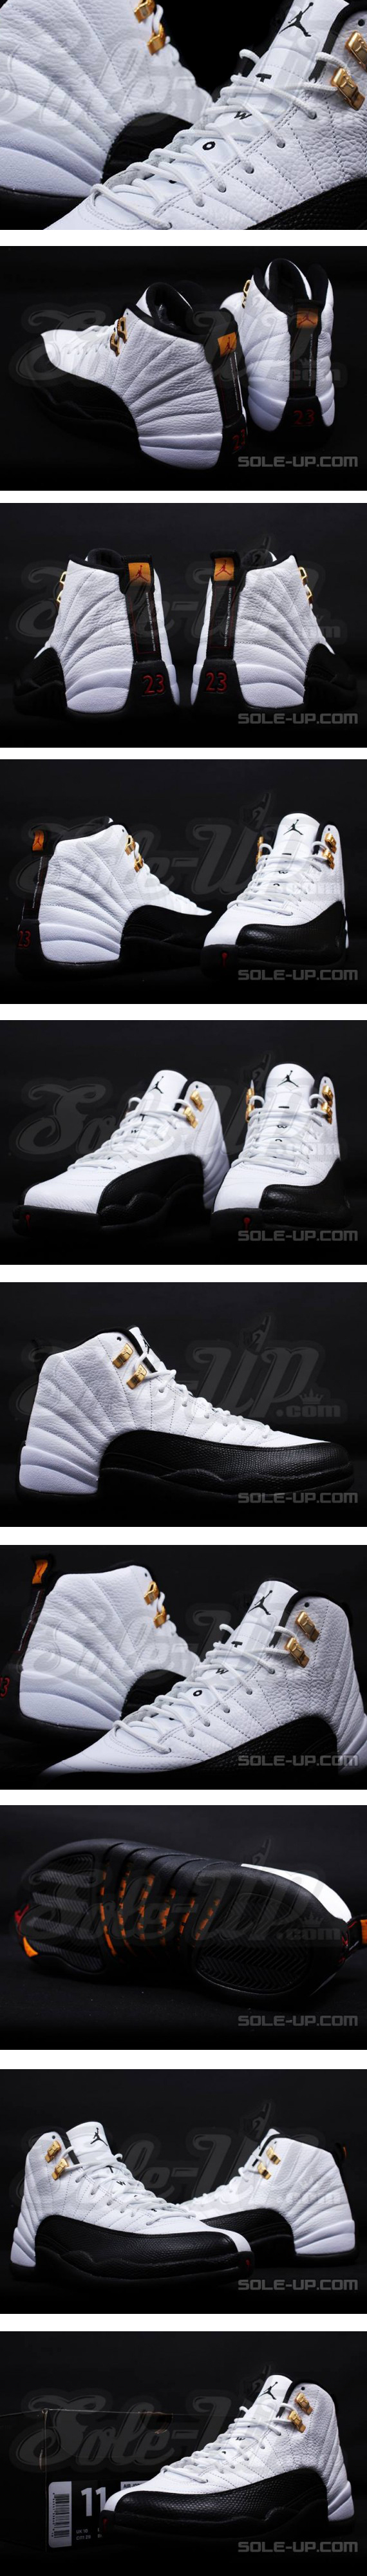 best sneakers 37ee4 e30c3 Filed under Fashion, Sneakers · Tagged with Air Jordan, Air Jordan 12, Taxi,  Tsxi, Young California